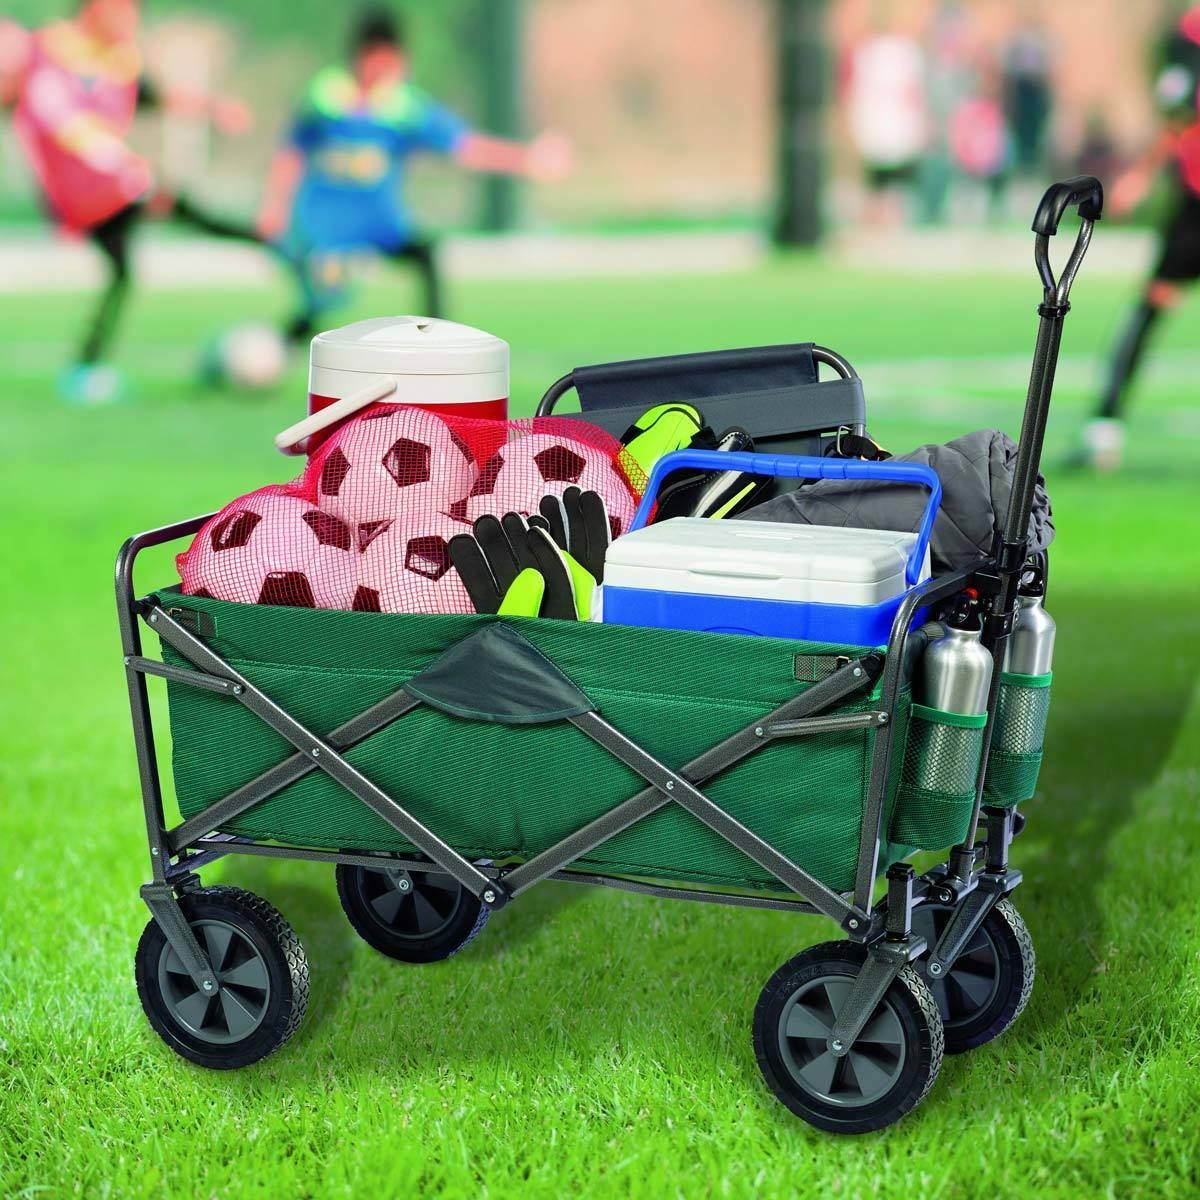 delightful Folding Garden Wagon Costco Part - 16: Tofasco Folding Wagon | Costco UK